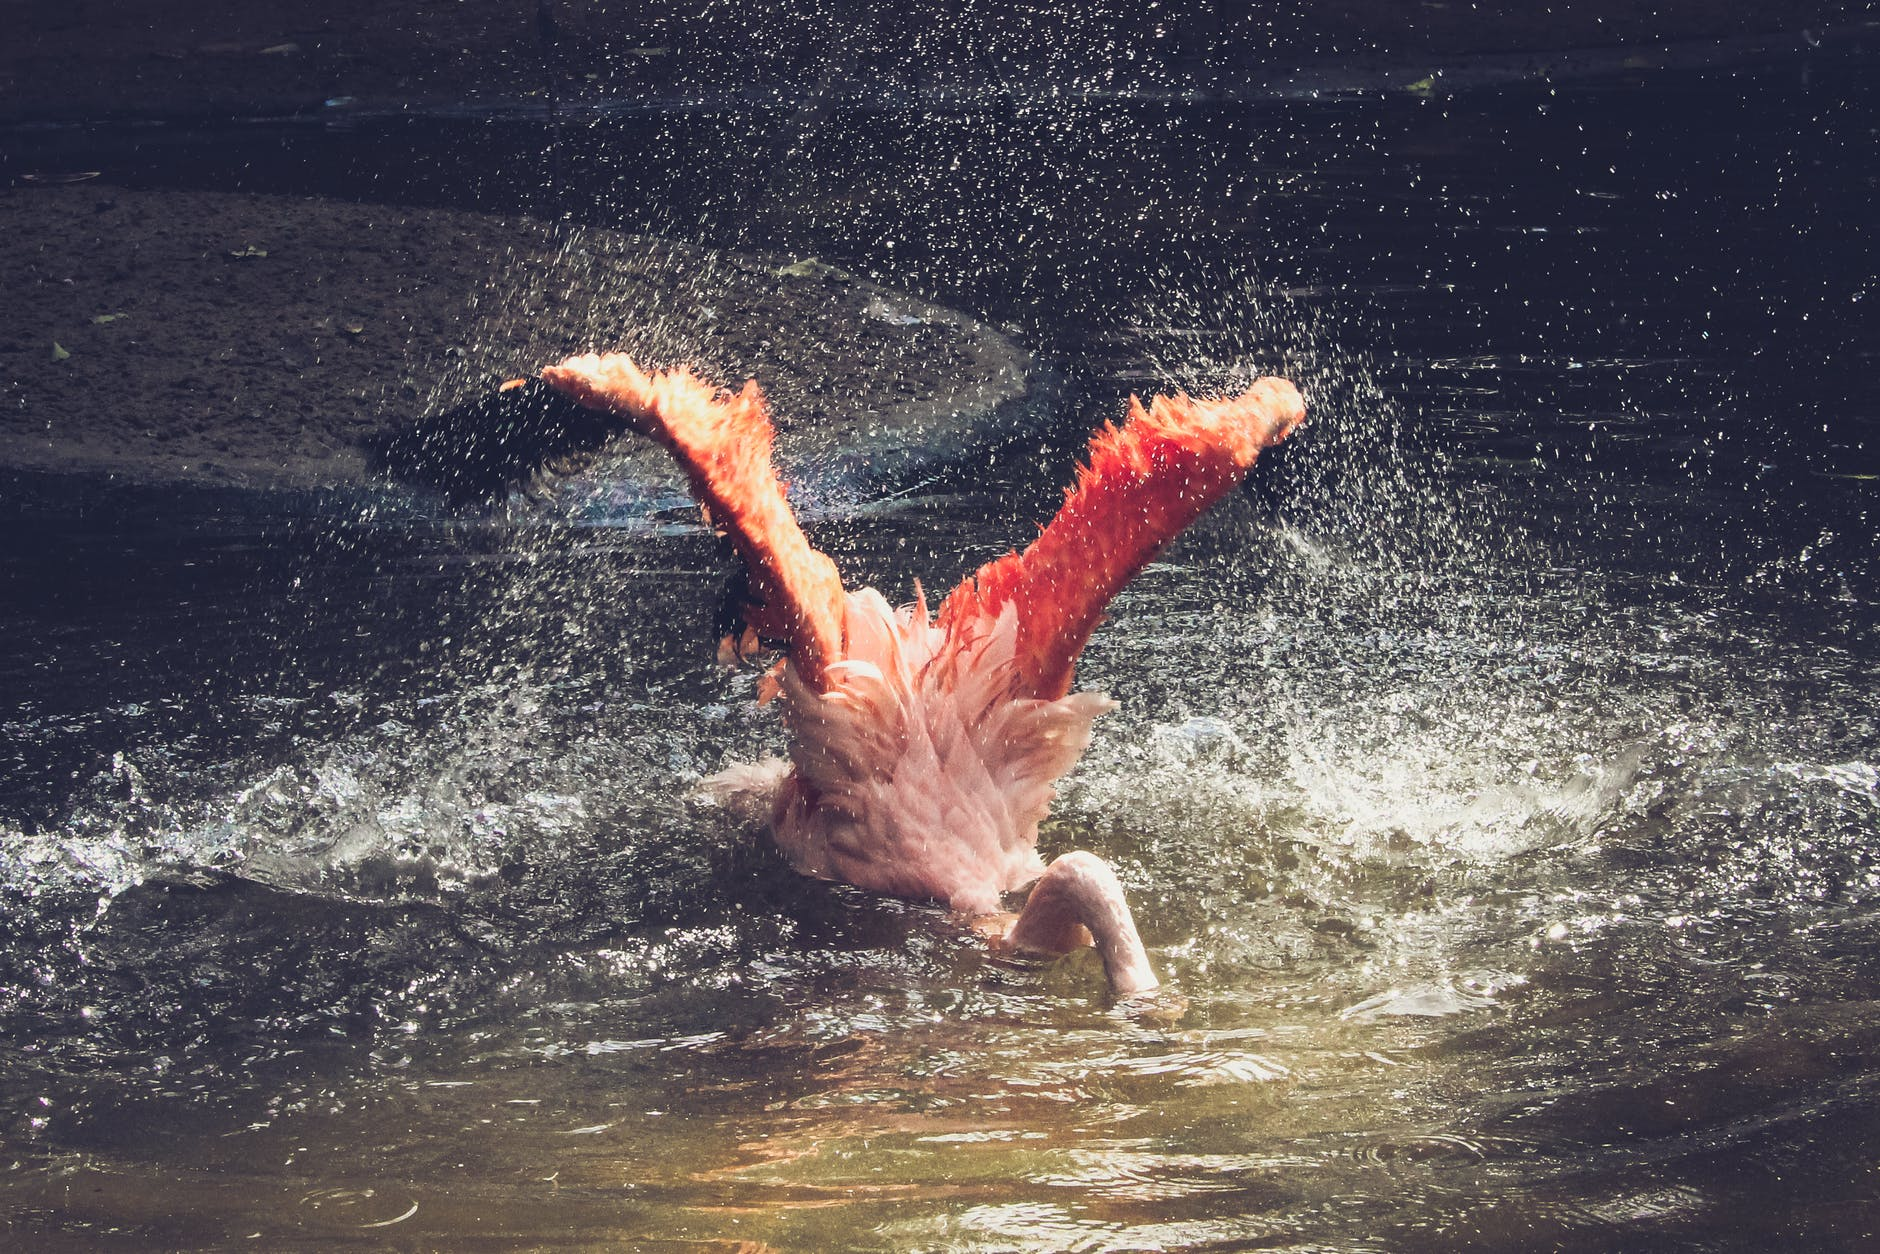 Flamingo with head in water, illustrating a financial website dropping in SEO rankings